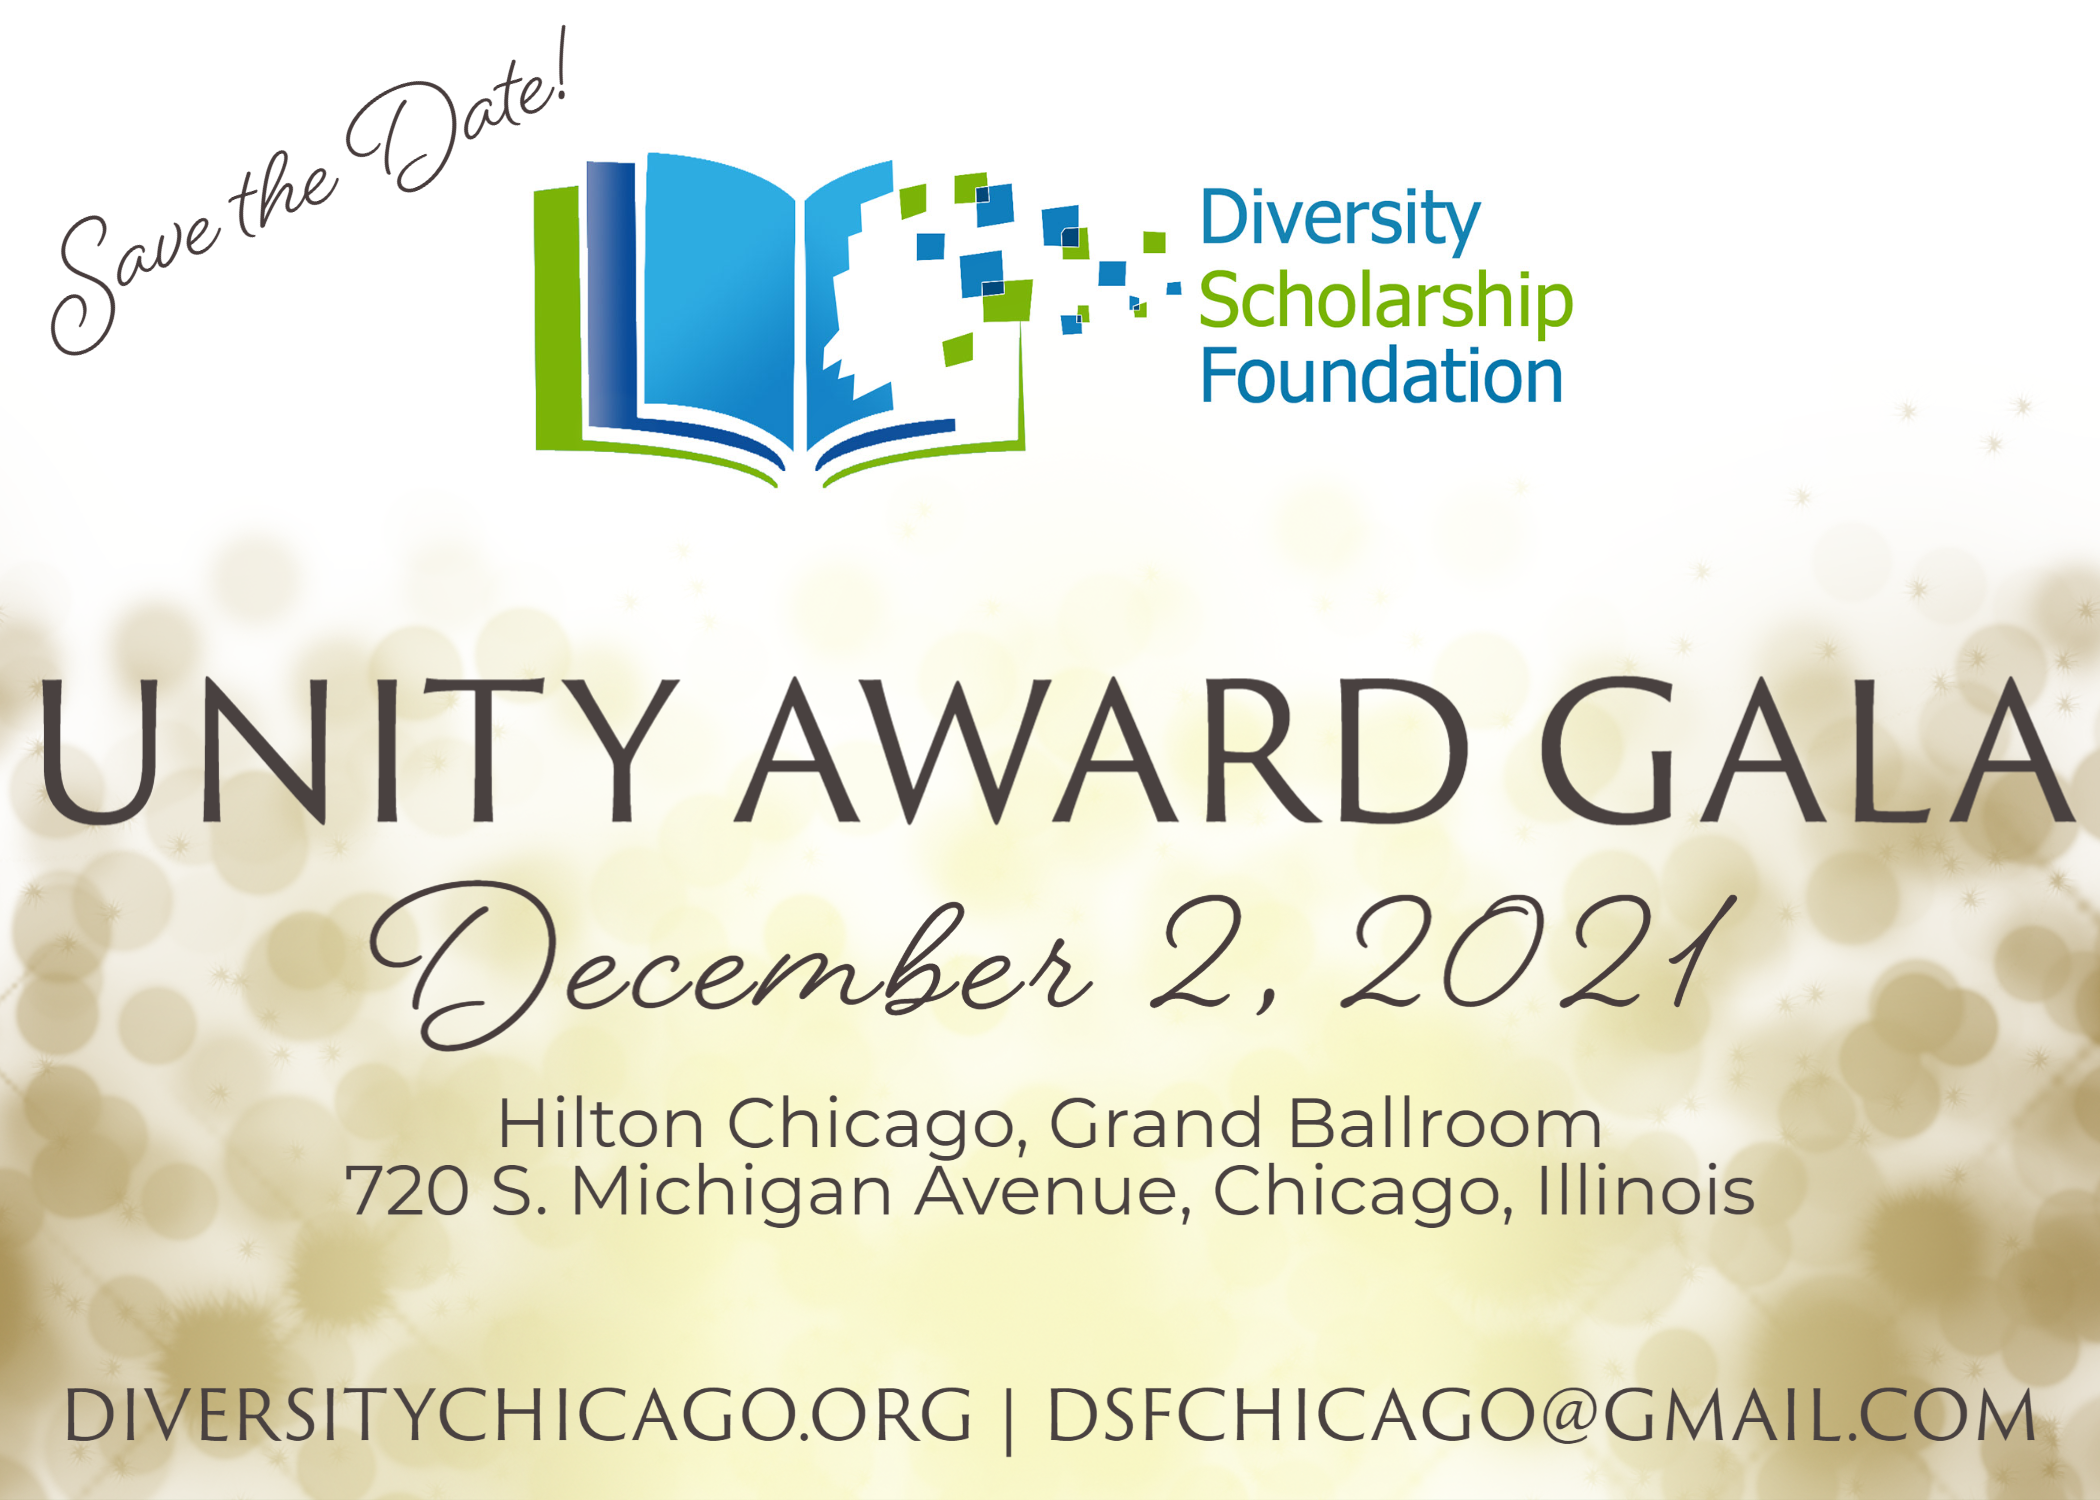 Save the date! Unity Award Gala on December 2, 2021